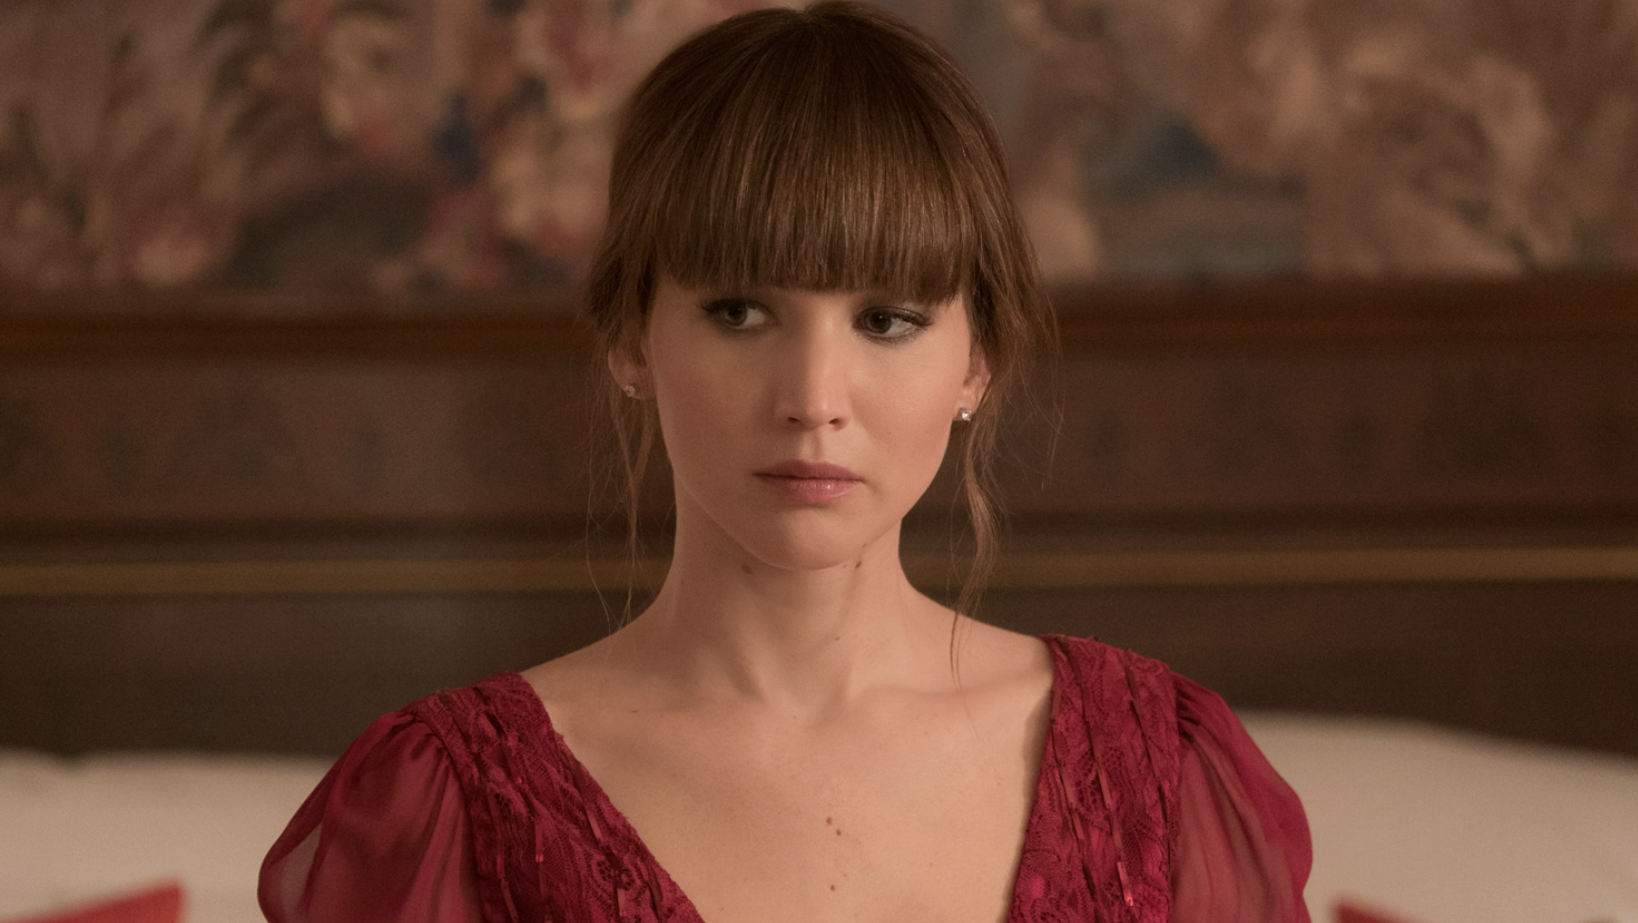 Joel Edgerton impressed with sex and violence scenes in Red Sparrow